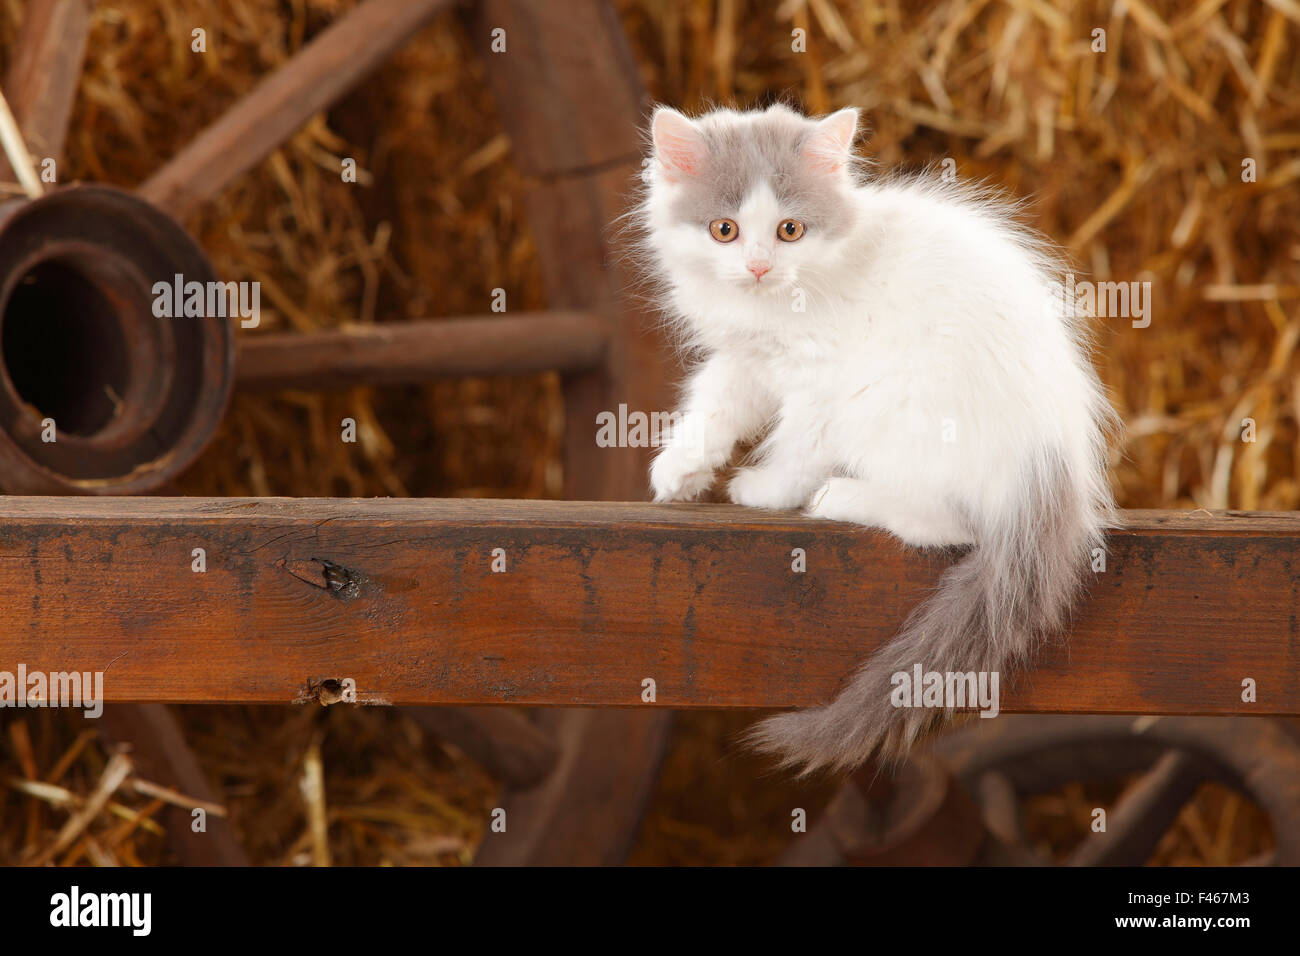 British Longhair, kitten with blue-van colouration age 10 weeks in barn with straw. Stock Photo